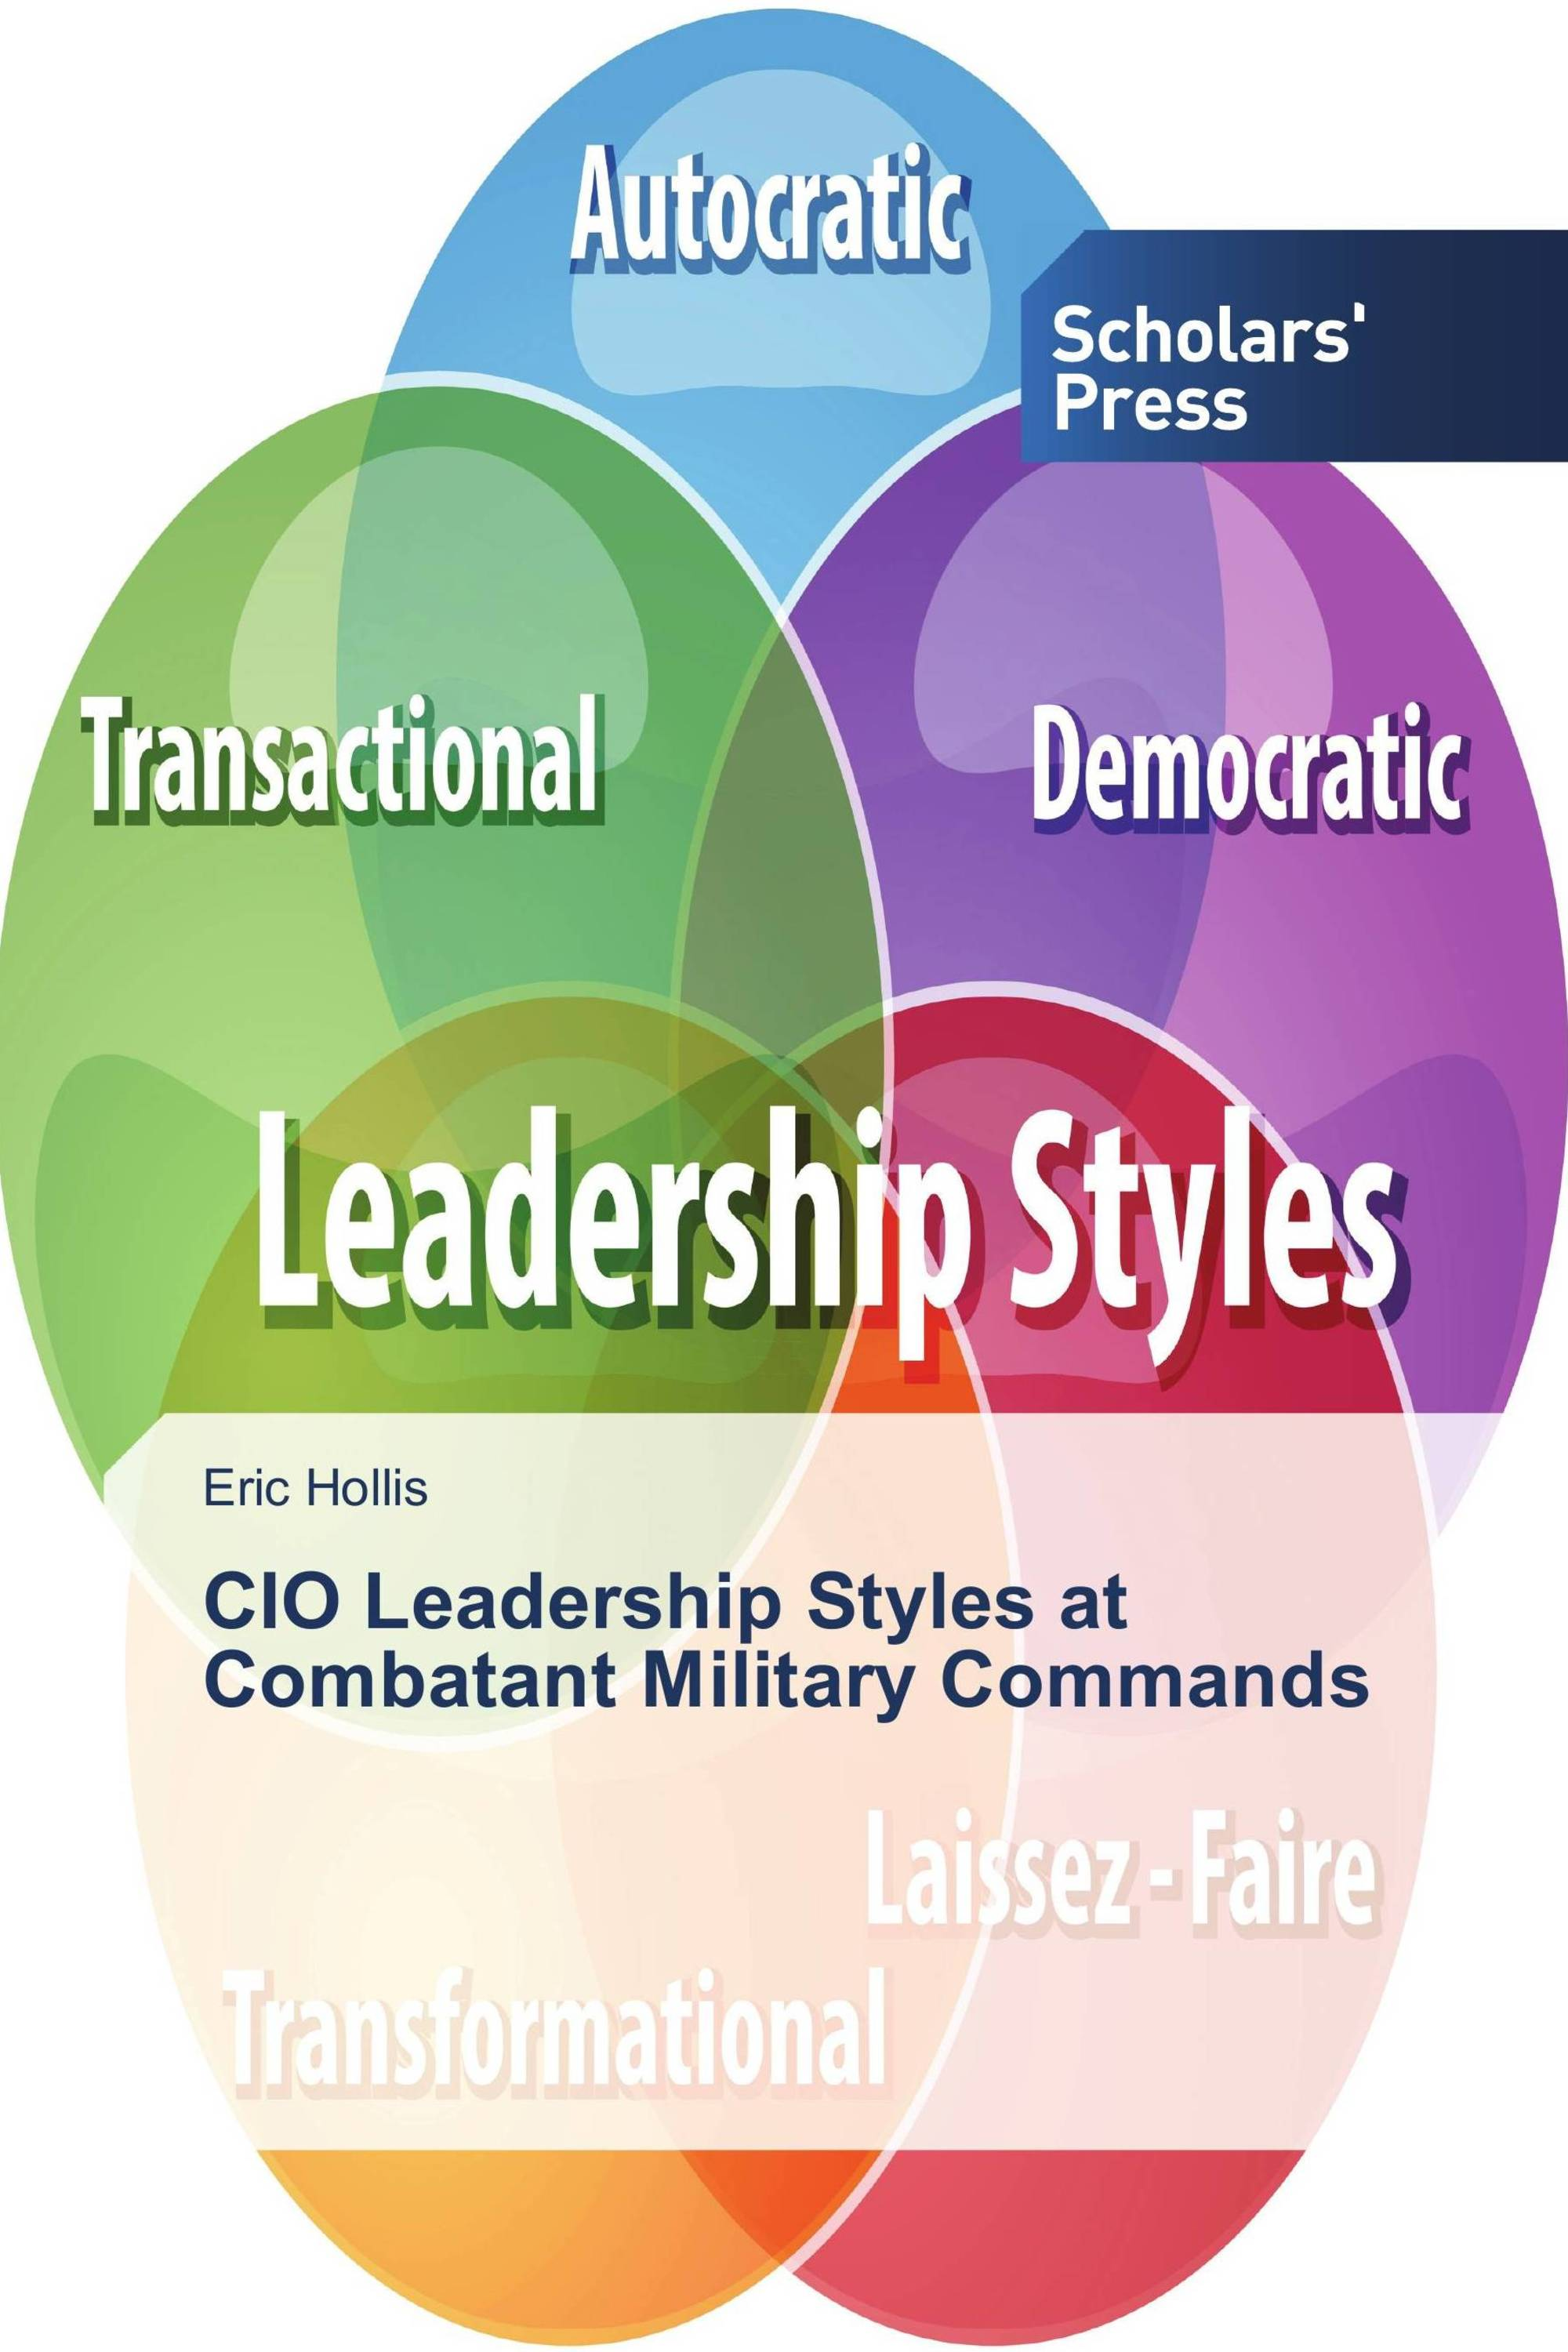 united kingdom cultural leadership style Leadership style, organizational culture and performance: empirical evidence from uk companies emmanuel ogbonna and lloyd c harris abstract the topics of leadership and organizational culture have attracted consider.